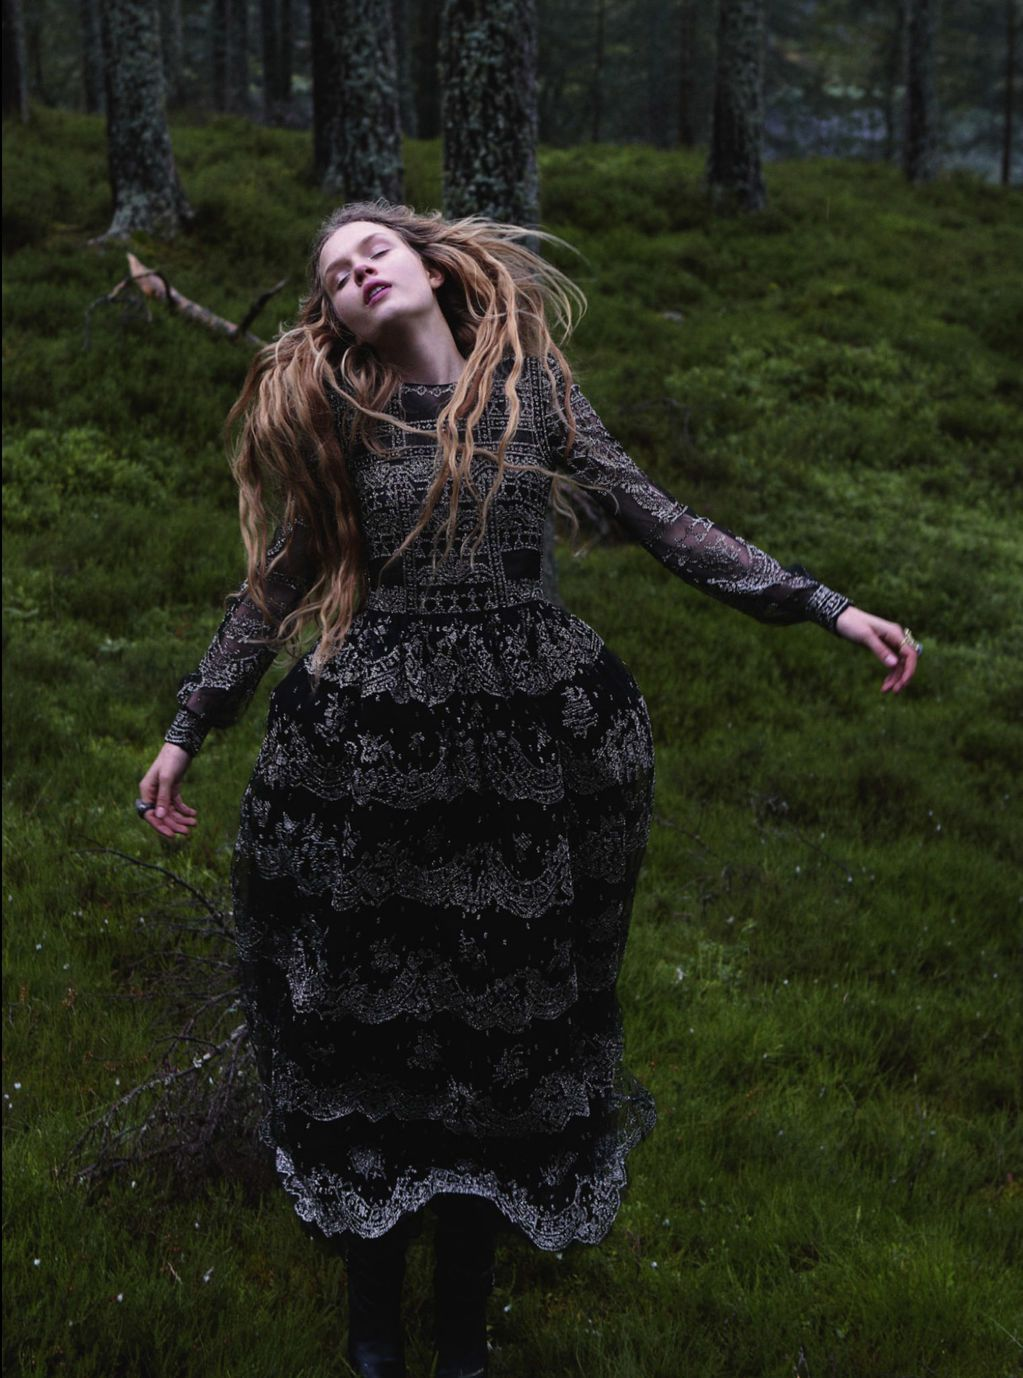 SOME ENCHANTED EVENING UK Harper's Bazaar, December 2012 ph. Yelena Yemchuk model: Josephine Skriver stylist: Cathy Kasterine